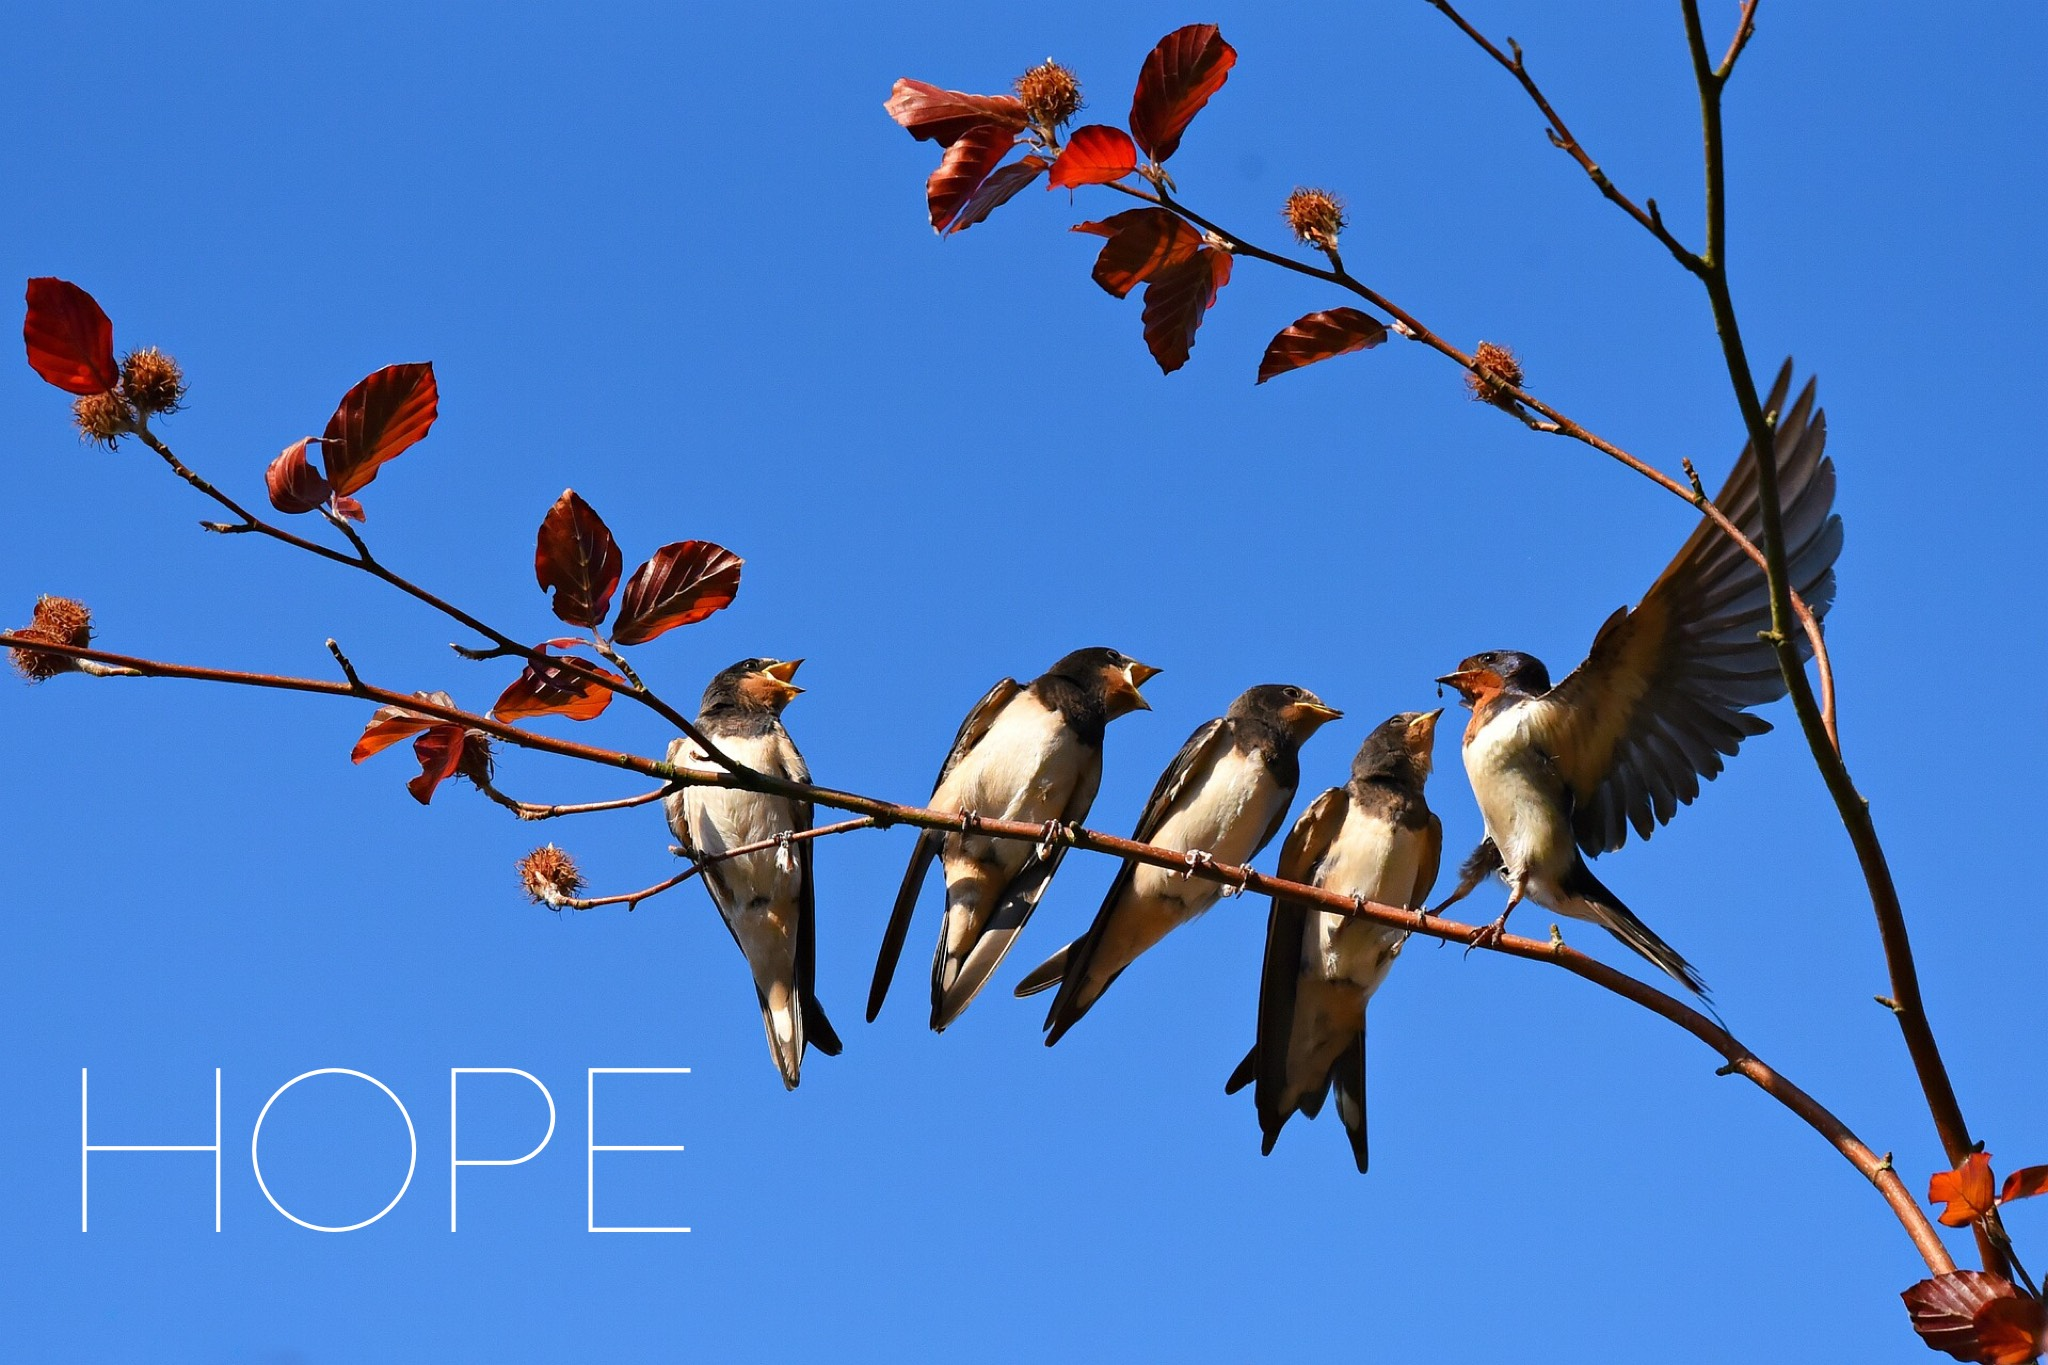 Birds on a wire with Hope text